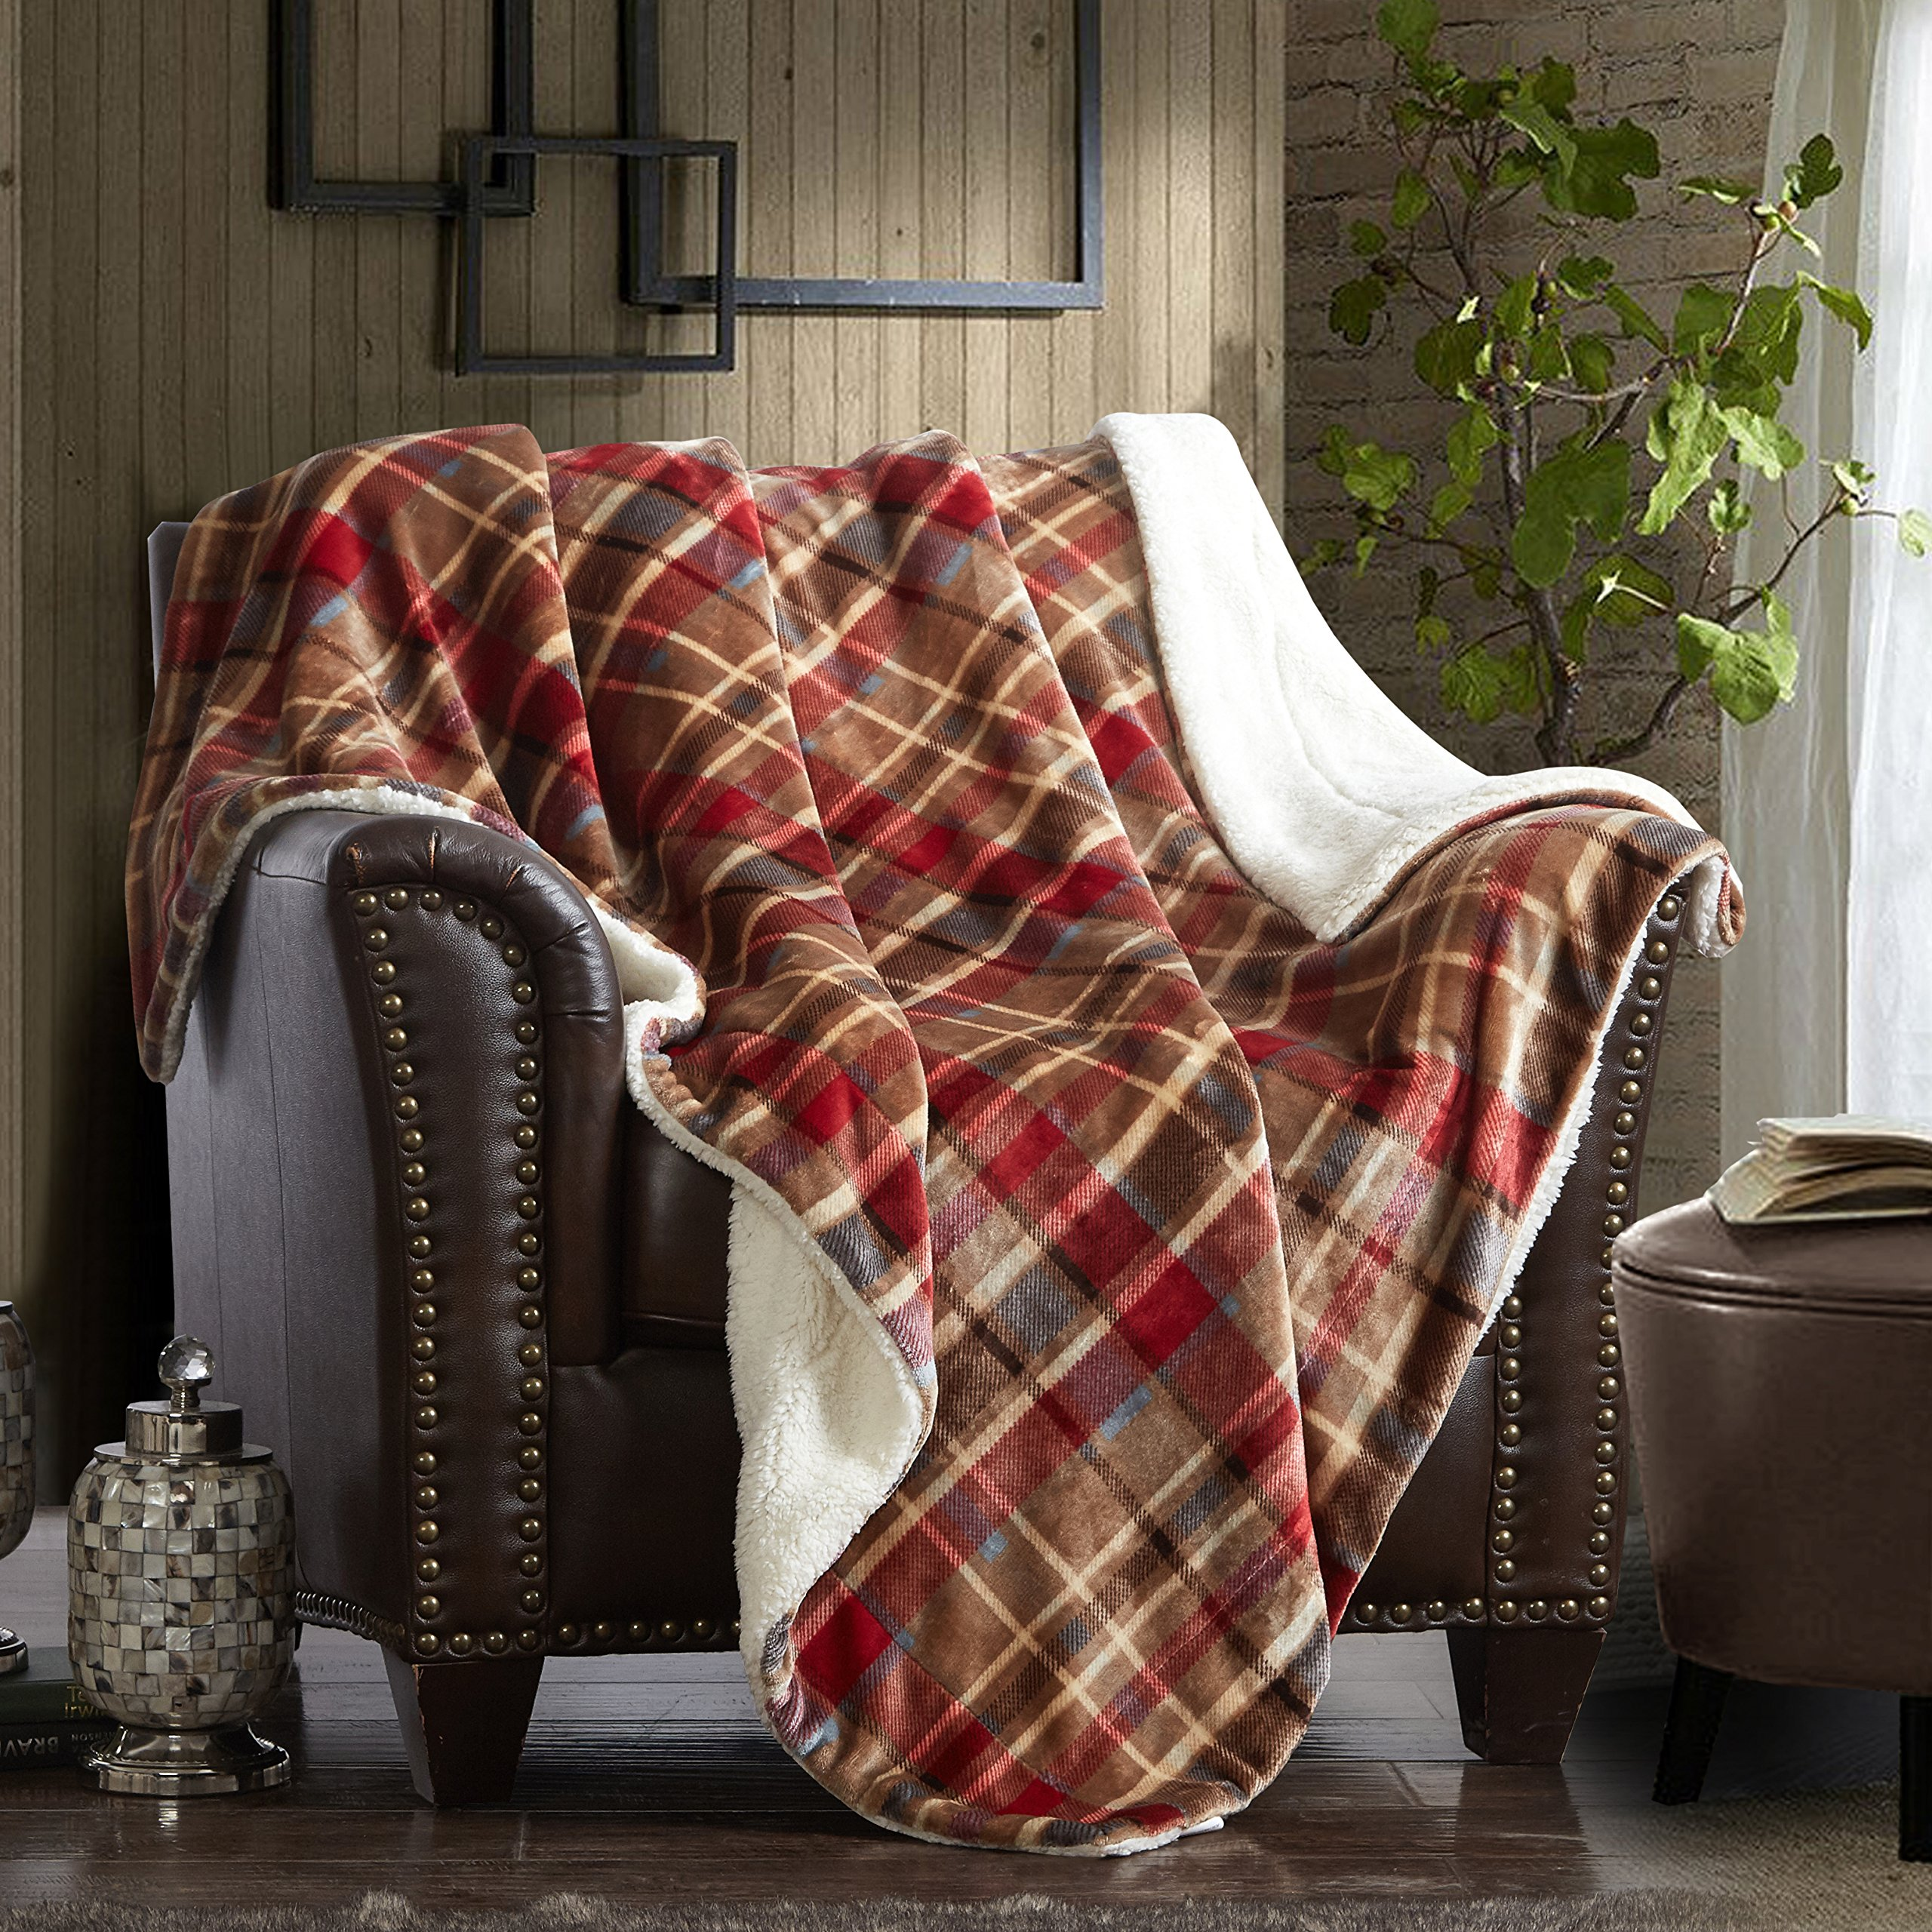 MERRYLIFE Decorative Sherpa Throw Blanket Ultra-Plush Comfort   Soft, Colorful   Home, Couch, Outdoor, Travel Use (60'' 70'', LOVE URBAN)